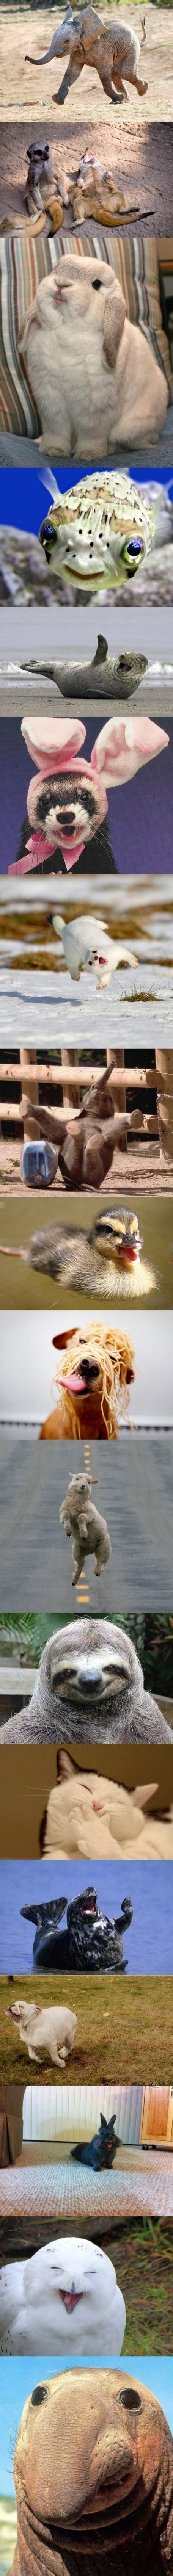 Worlds happiest animals